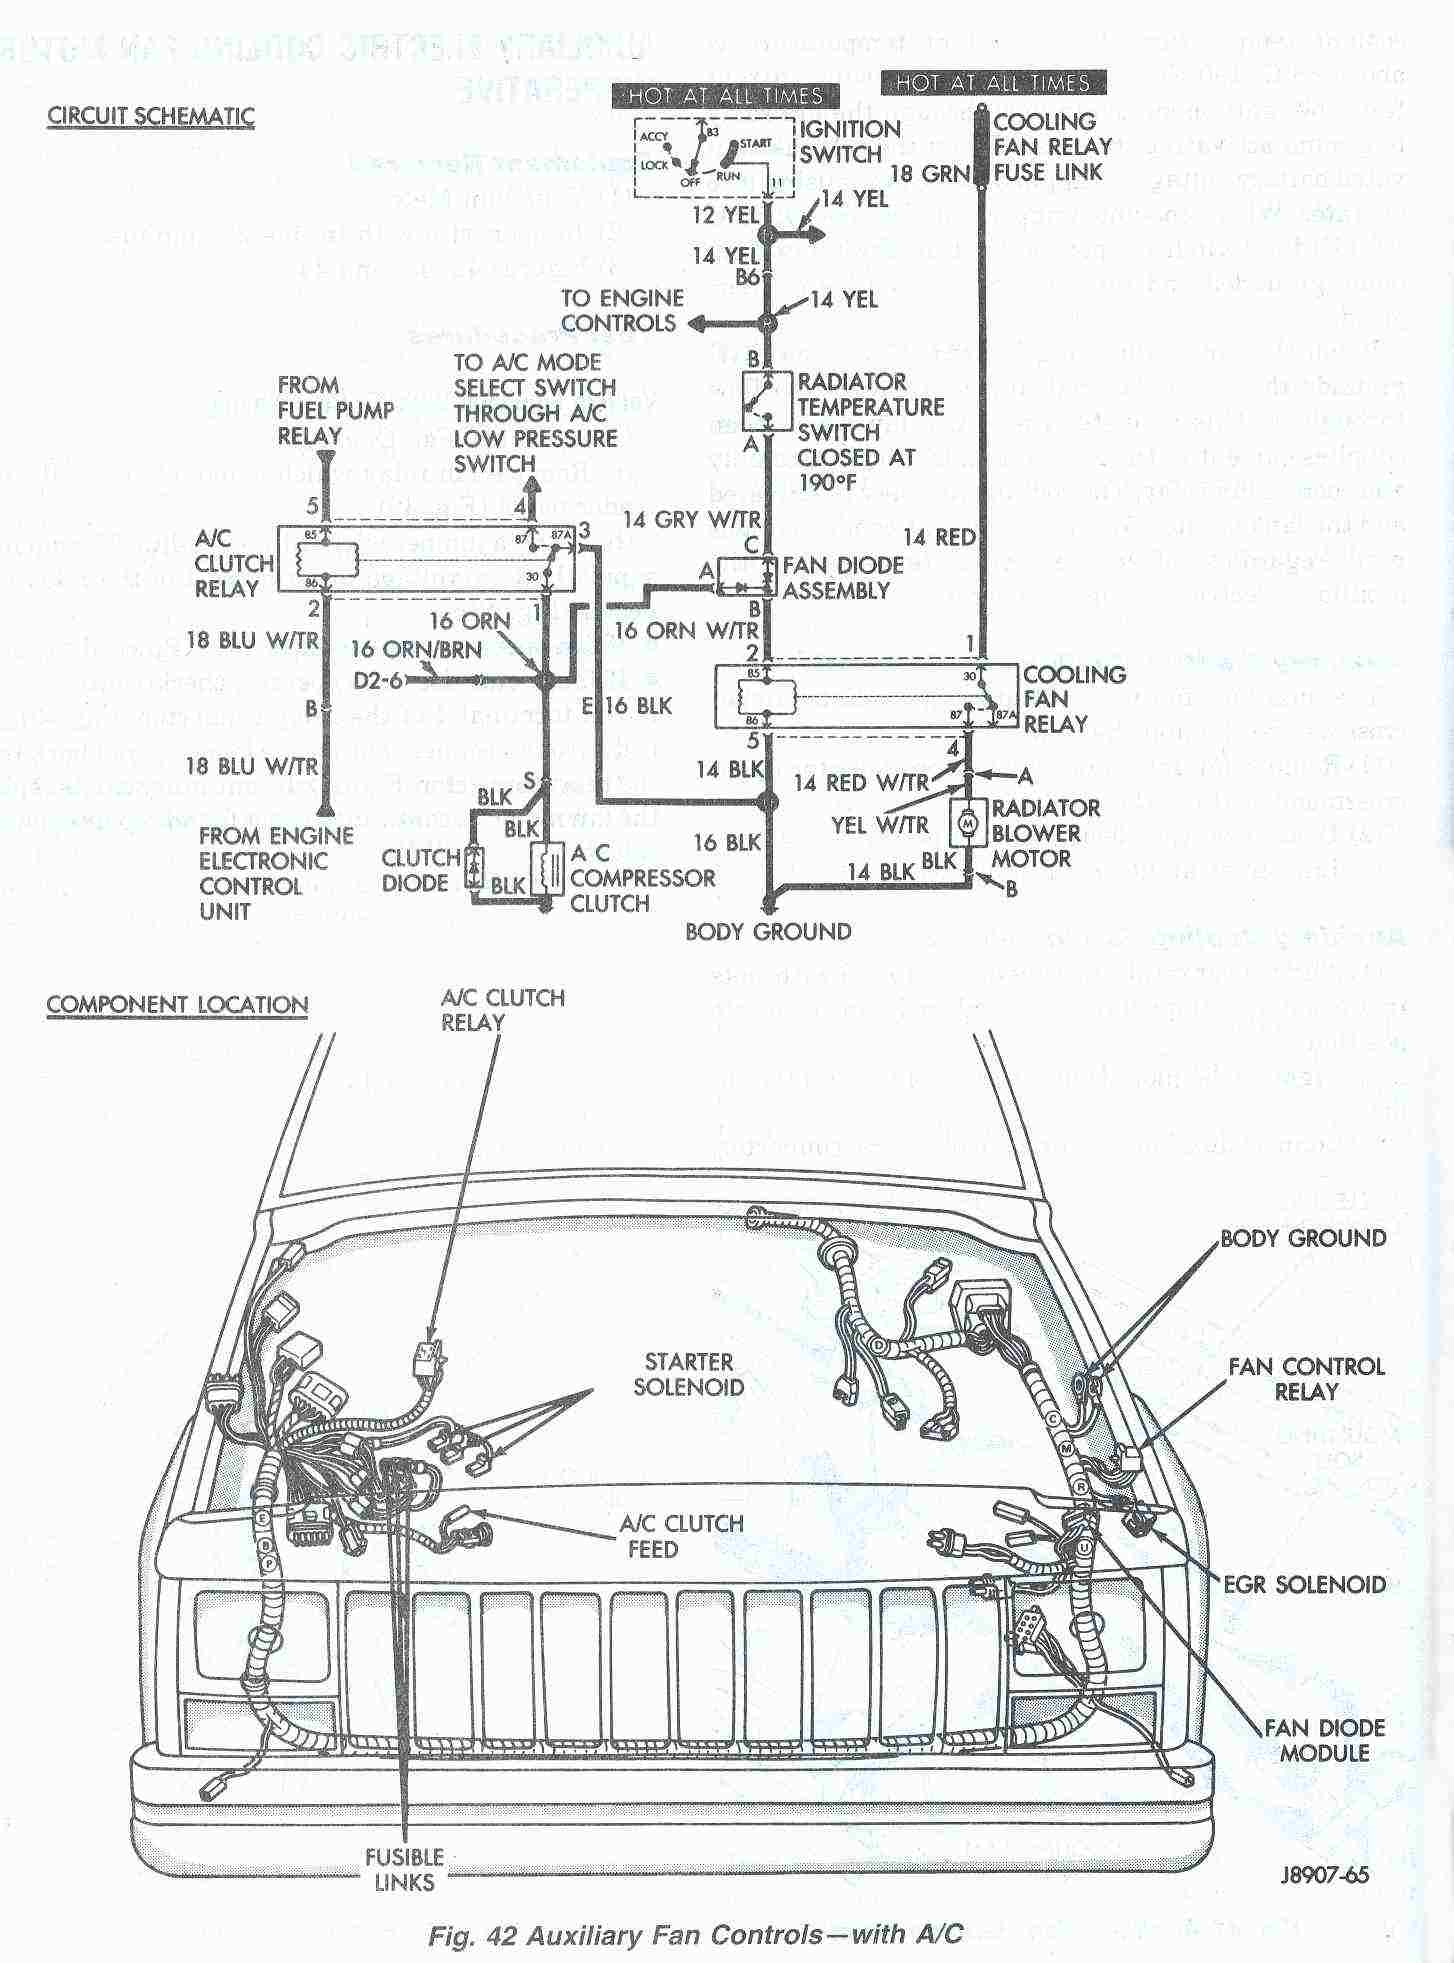 Auxiliary_Fan_Schematic_Fig_42 jeep cherokee cooling system electric cooling fan 89 jeep cherokee wiring diagram at gsmx.co